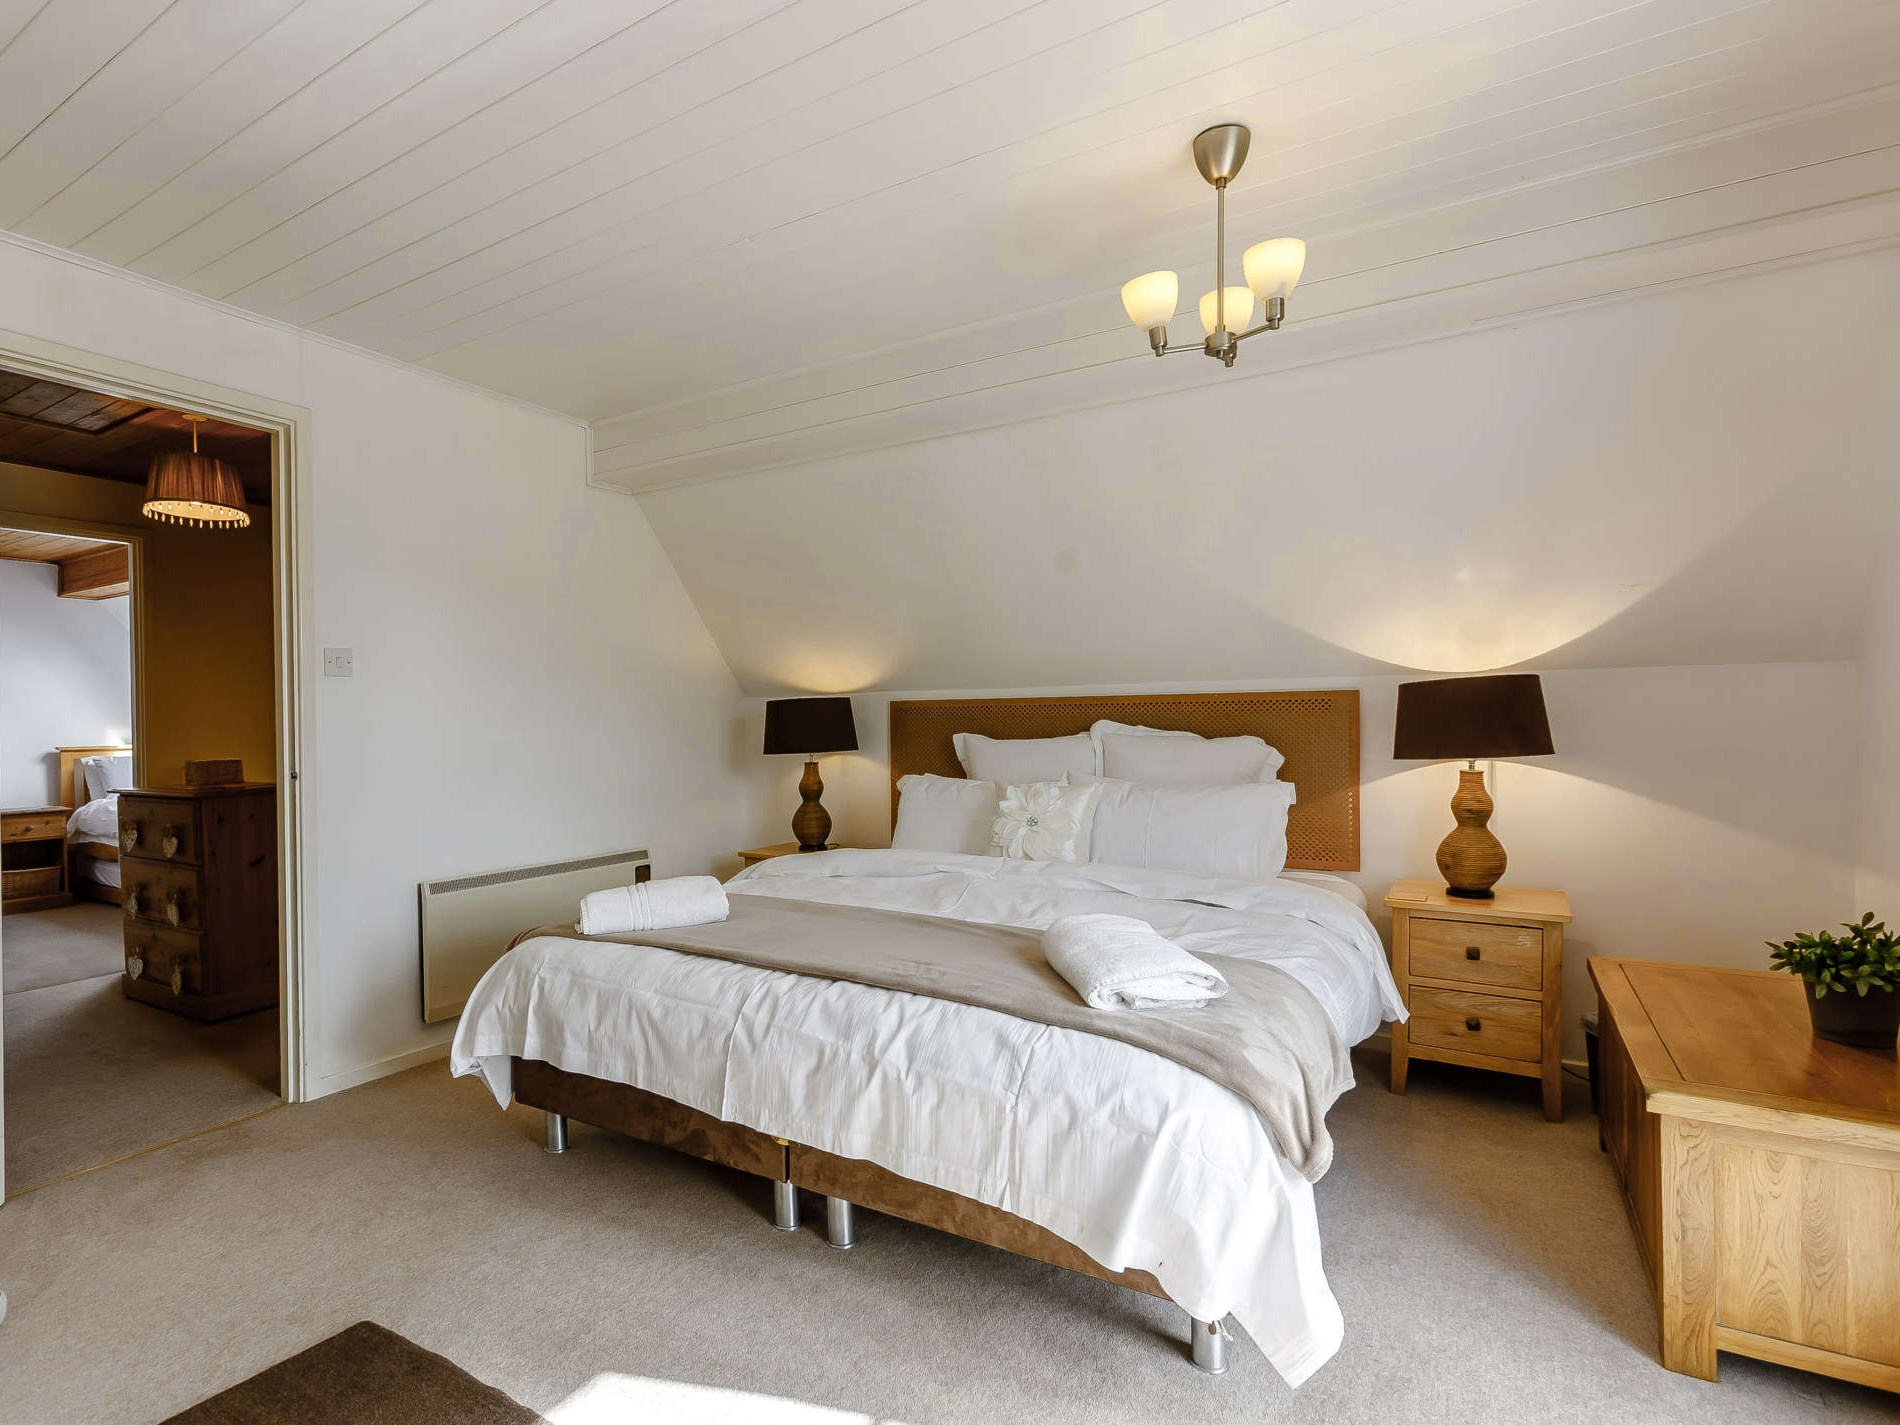 3 Bedroom House in Gloucestershire, Heart of England